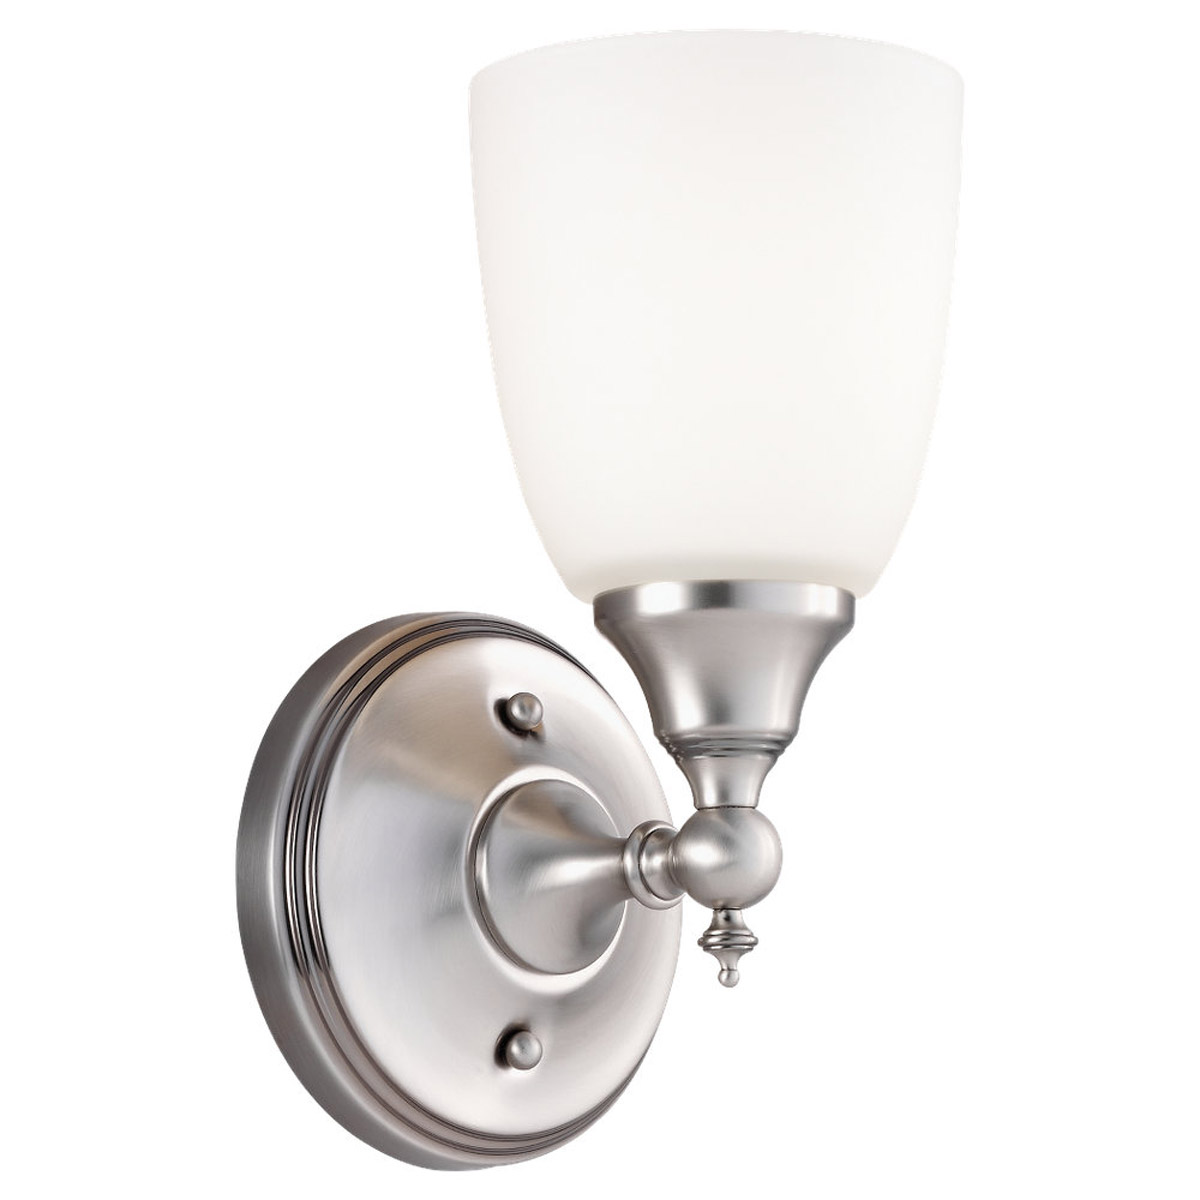 Sea Gull Lighting Finitude 1 Light Bath Vanity in Antique Brushed Nickel 44615-965 photo